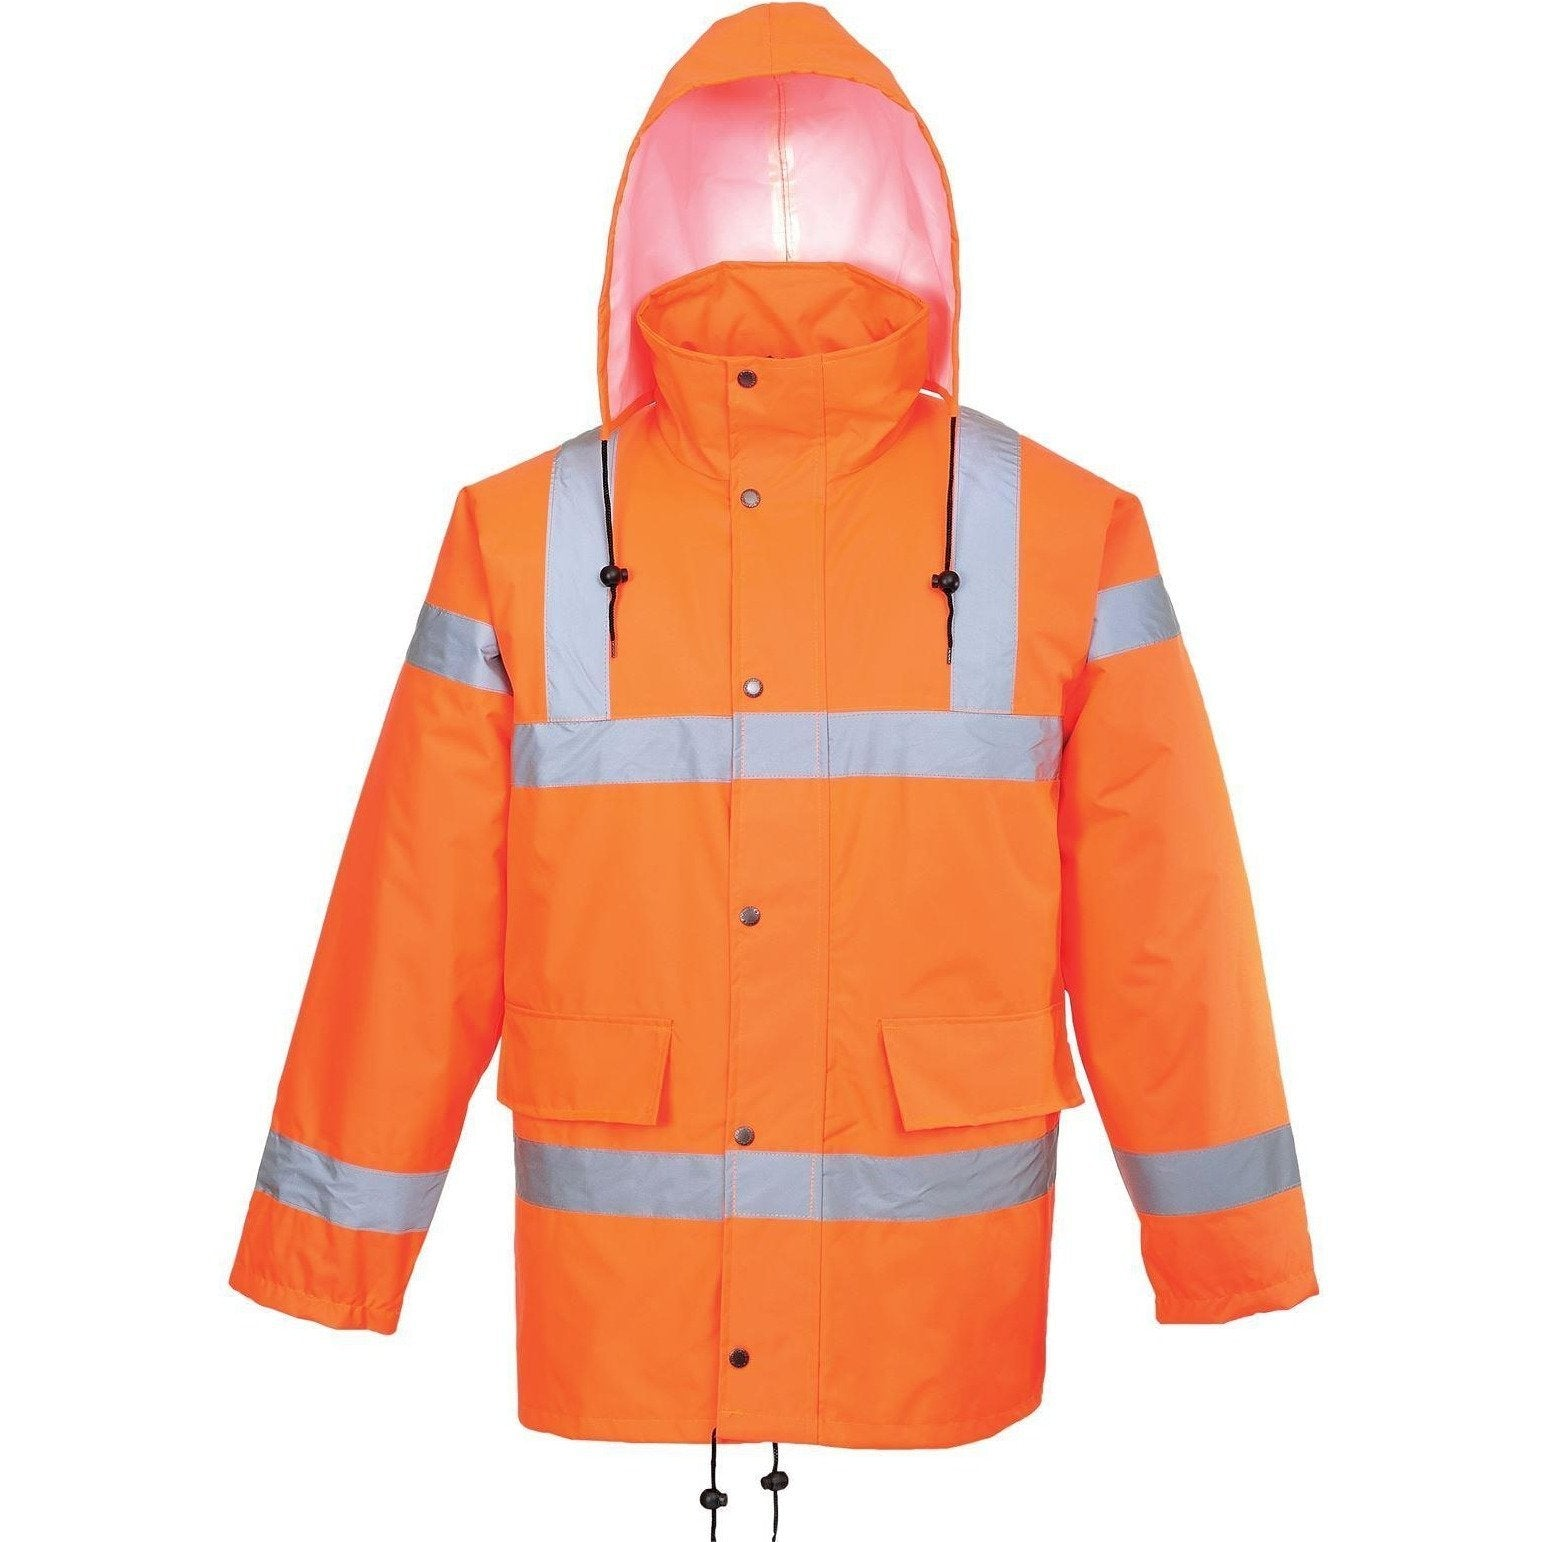 Portwest Hi-Vis Breathable Jacket GO/RT RT34 - reid outdoors